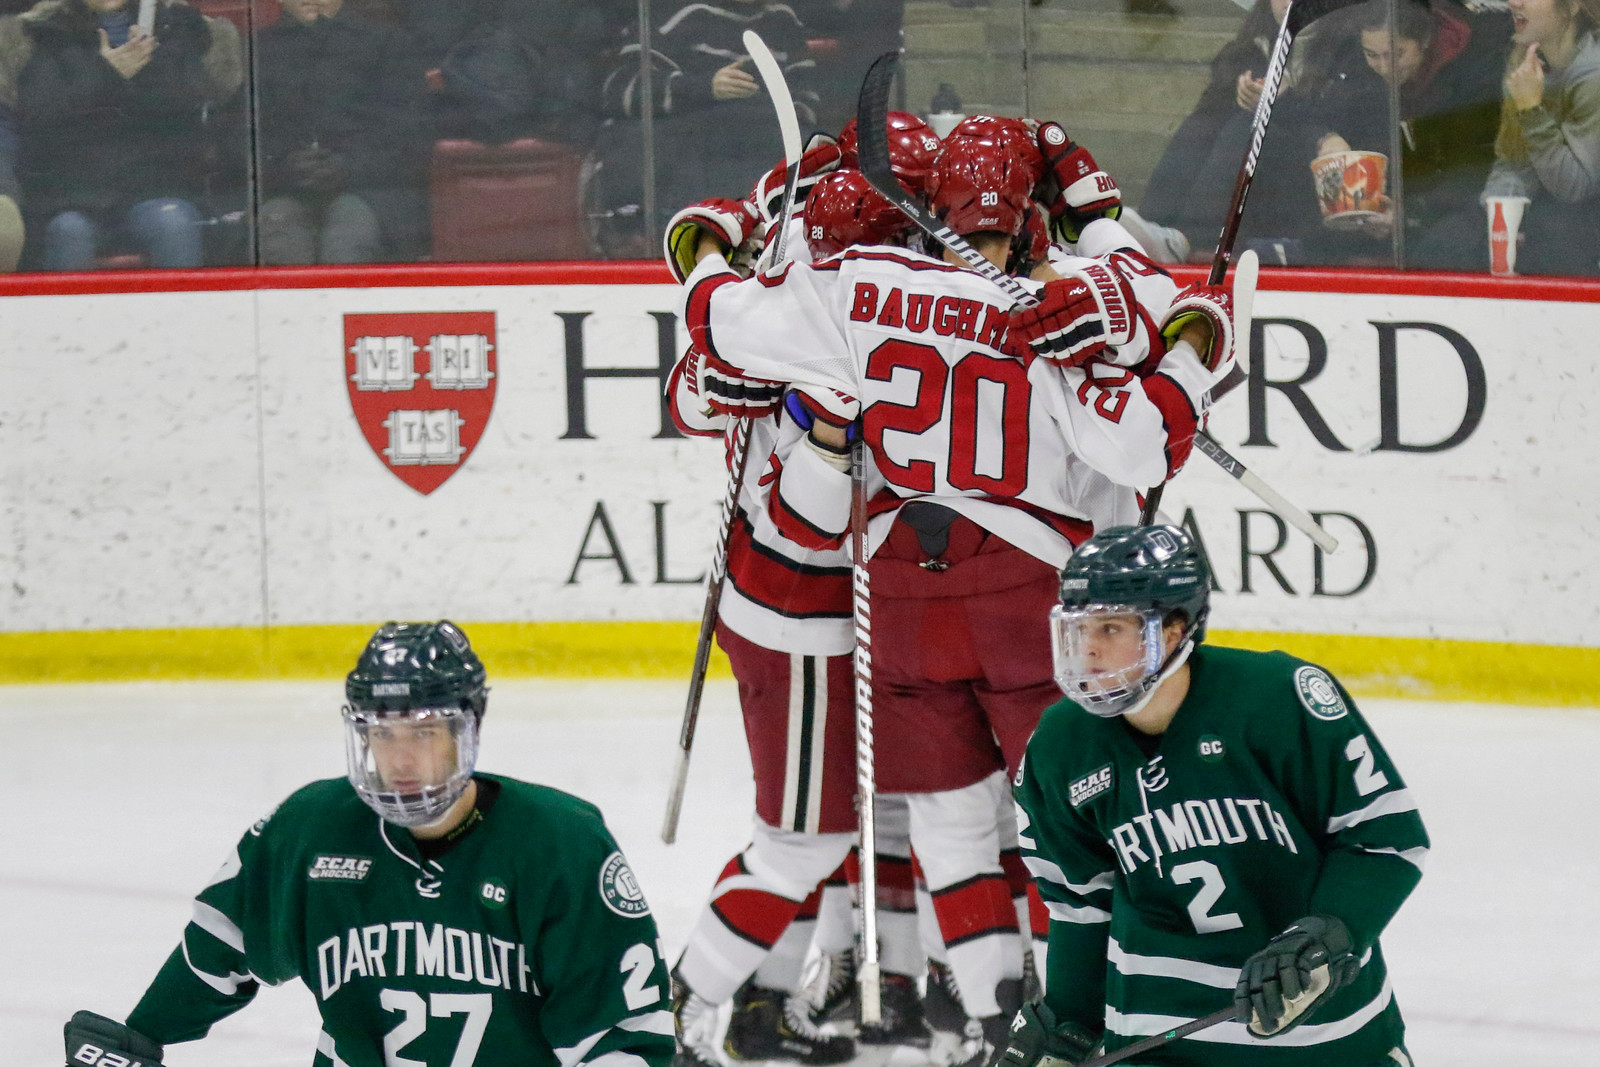 Despite its hot start to game two, Dartmouth could not maintain its fiery play to force a deciding game three on Sunday afternoon.